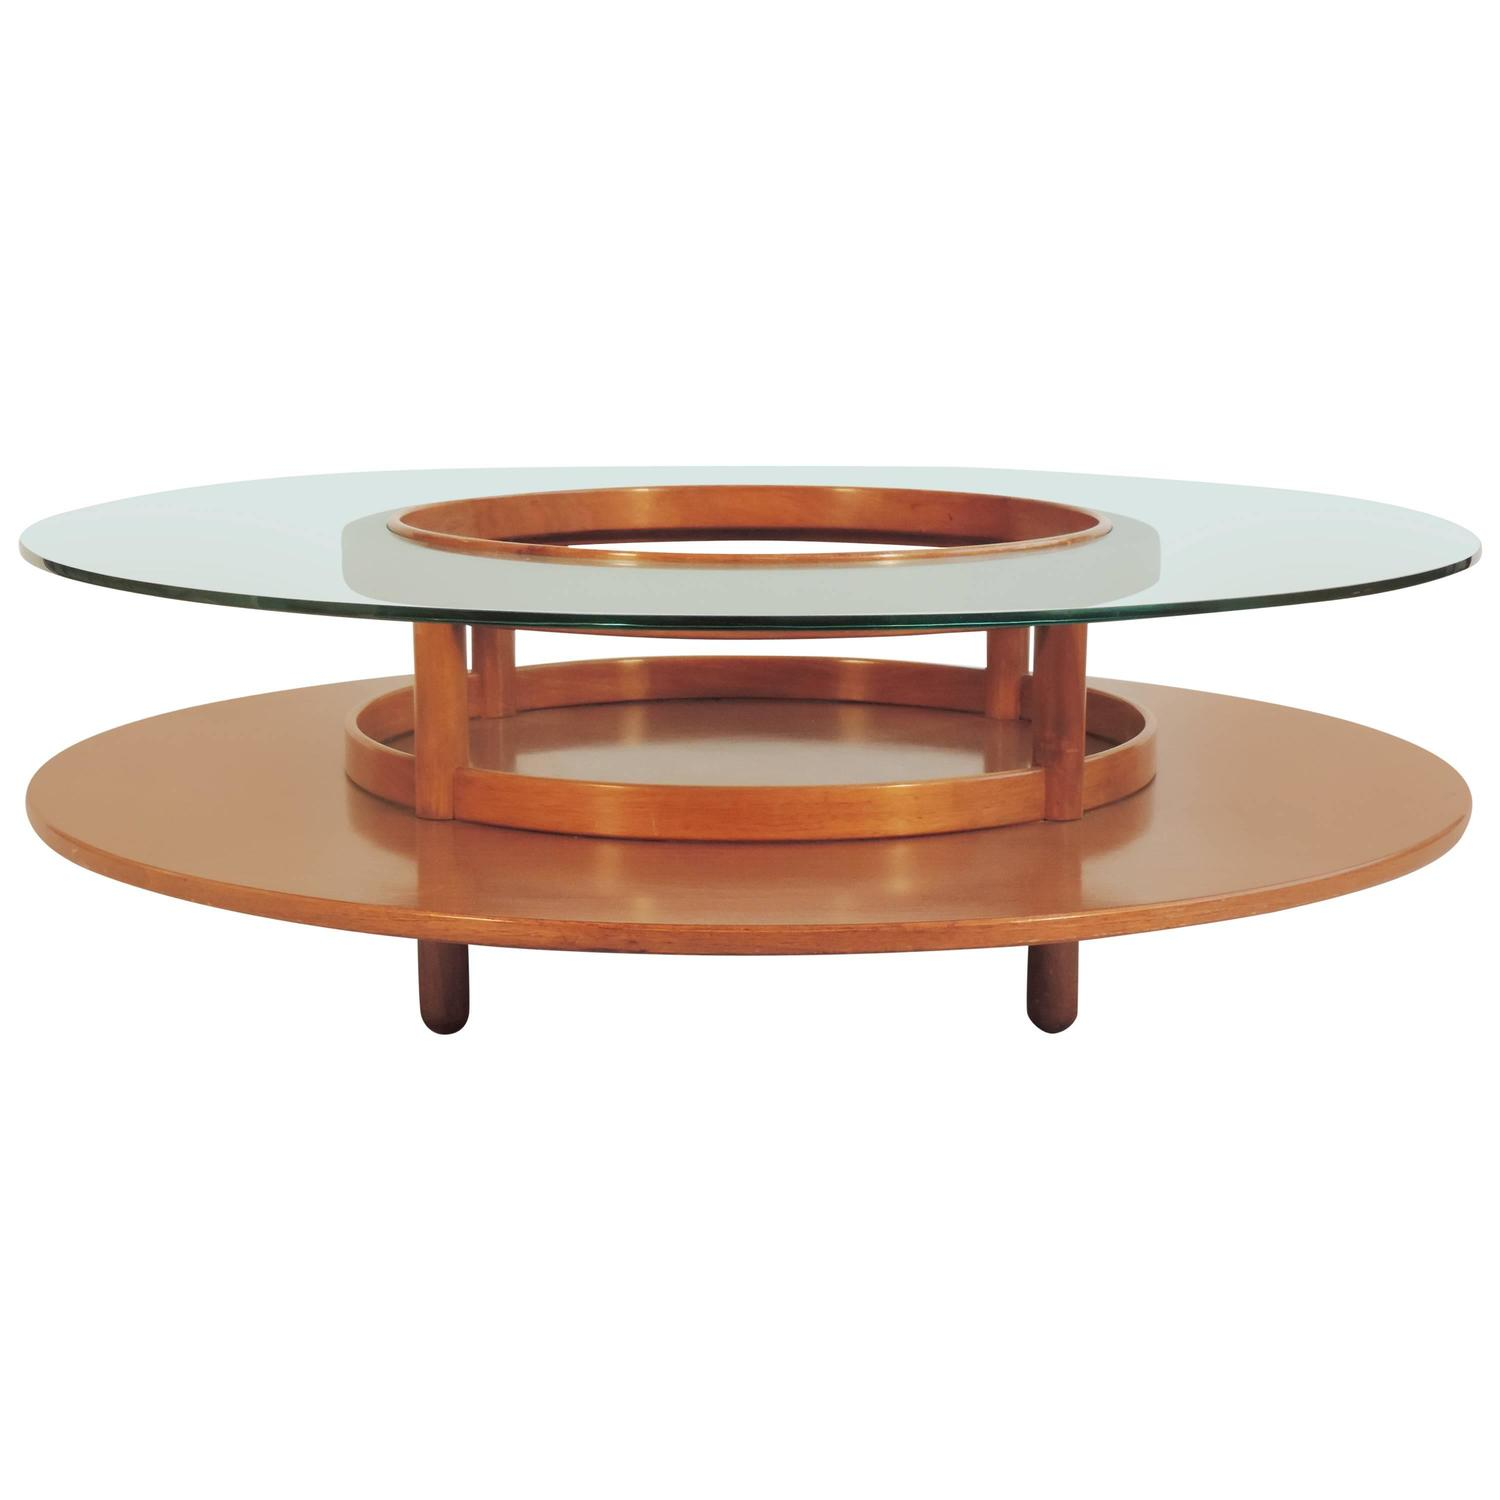 Spectacular Gianfranco Frattini Coffee Table For Cassina At 1stdibs